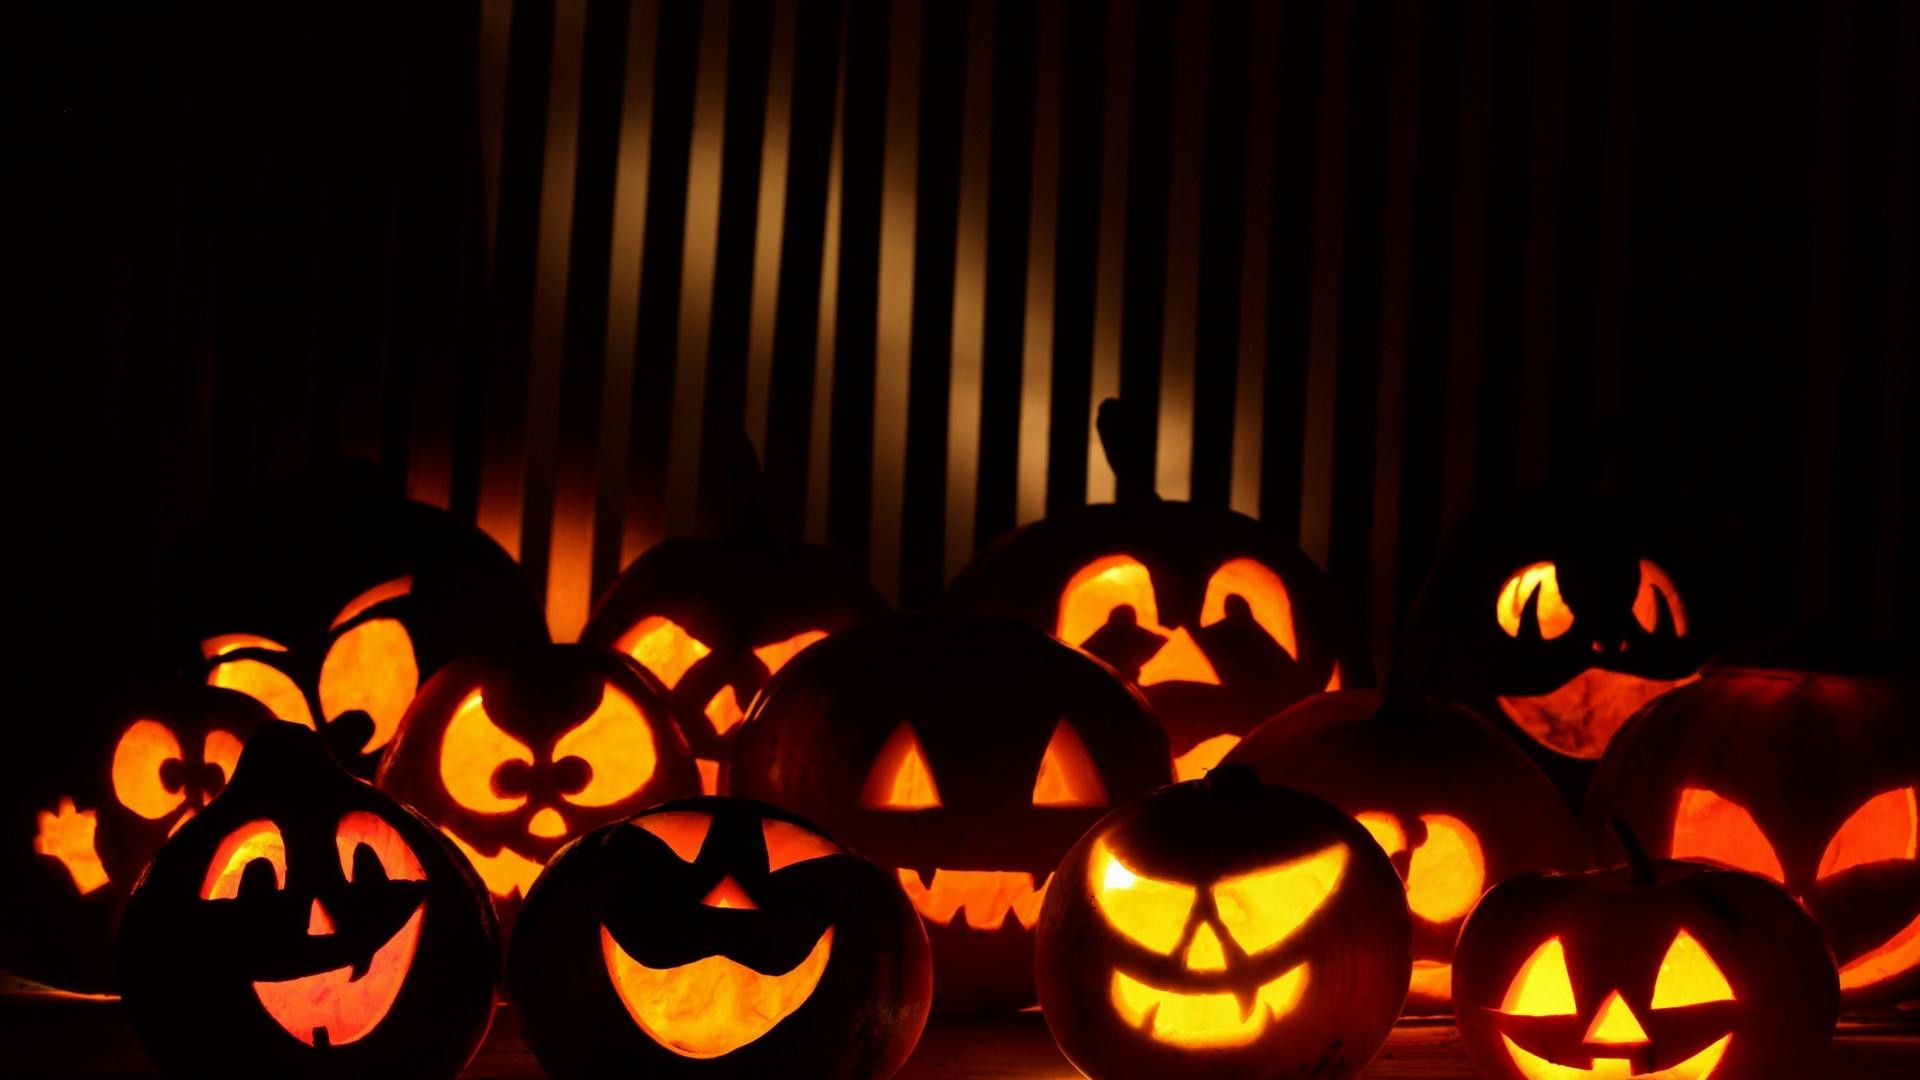 Cute Halloween wallpaper ·① Download free beautiful HD ...